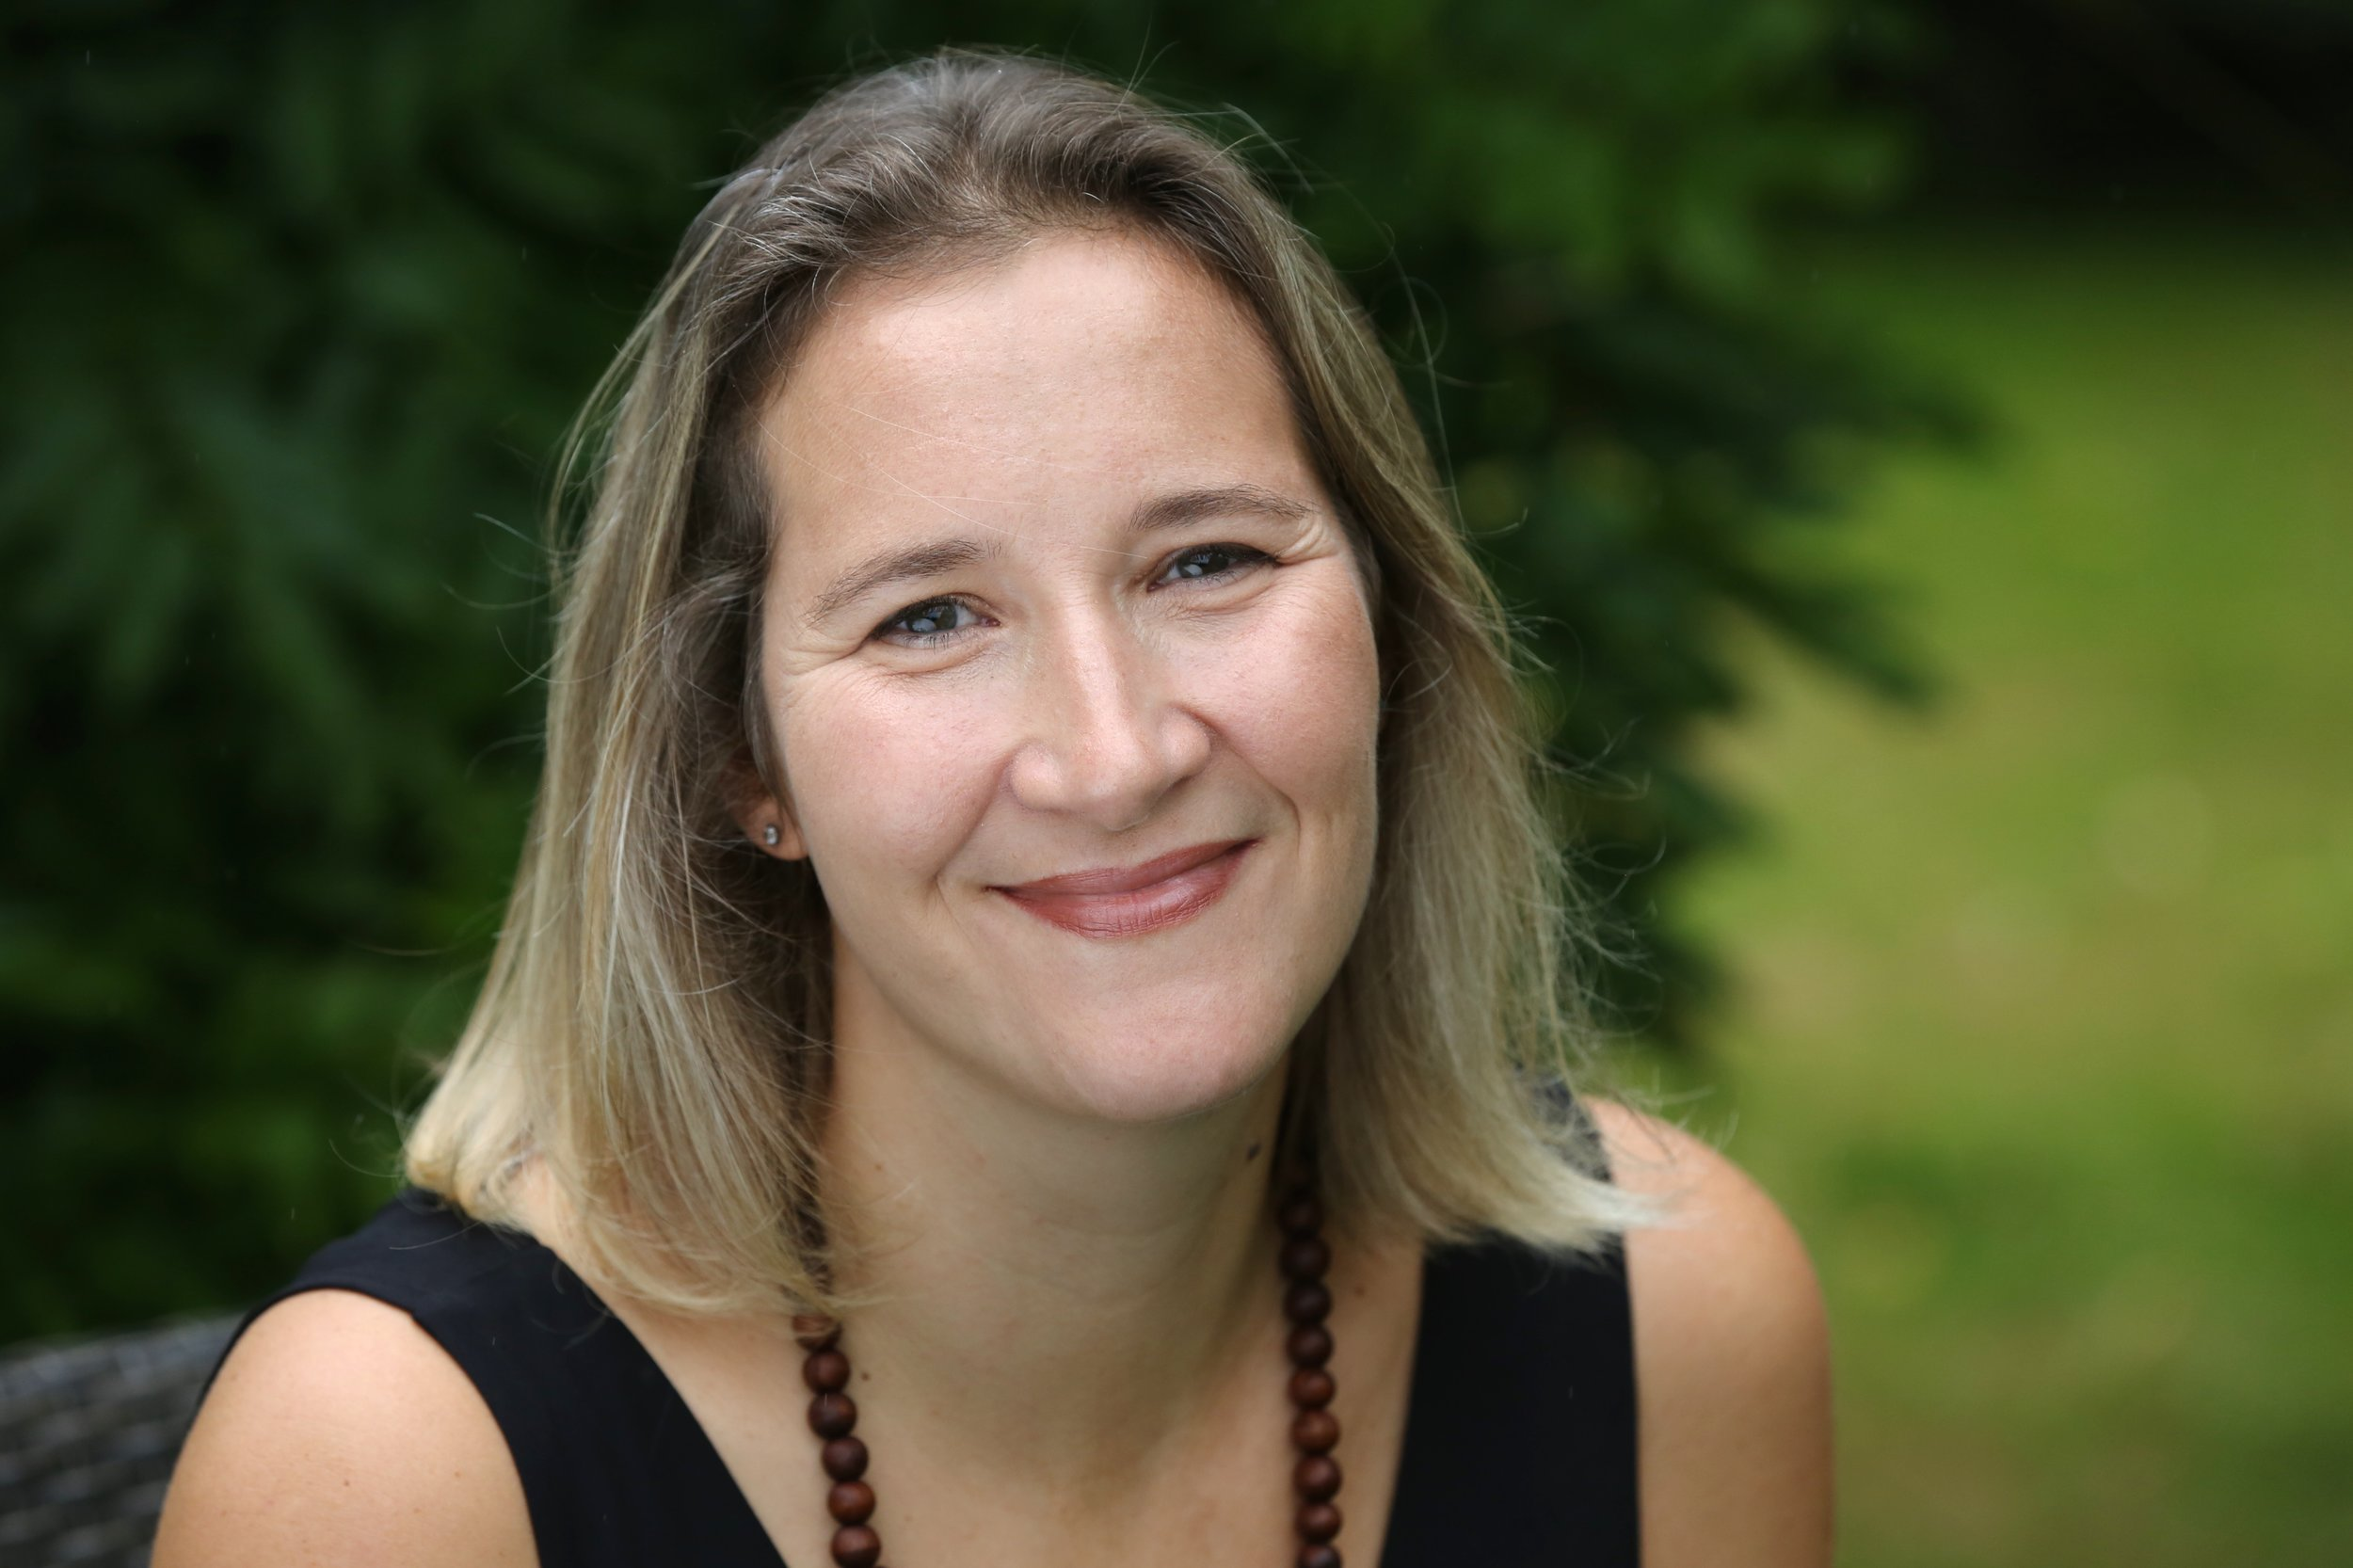 Our founder - Kate Gloudemans